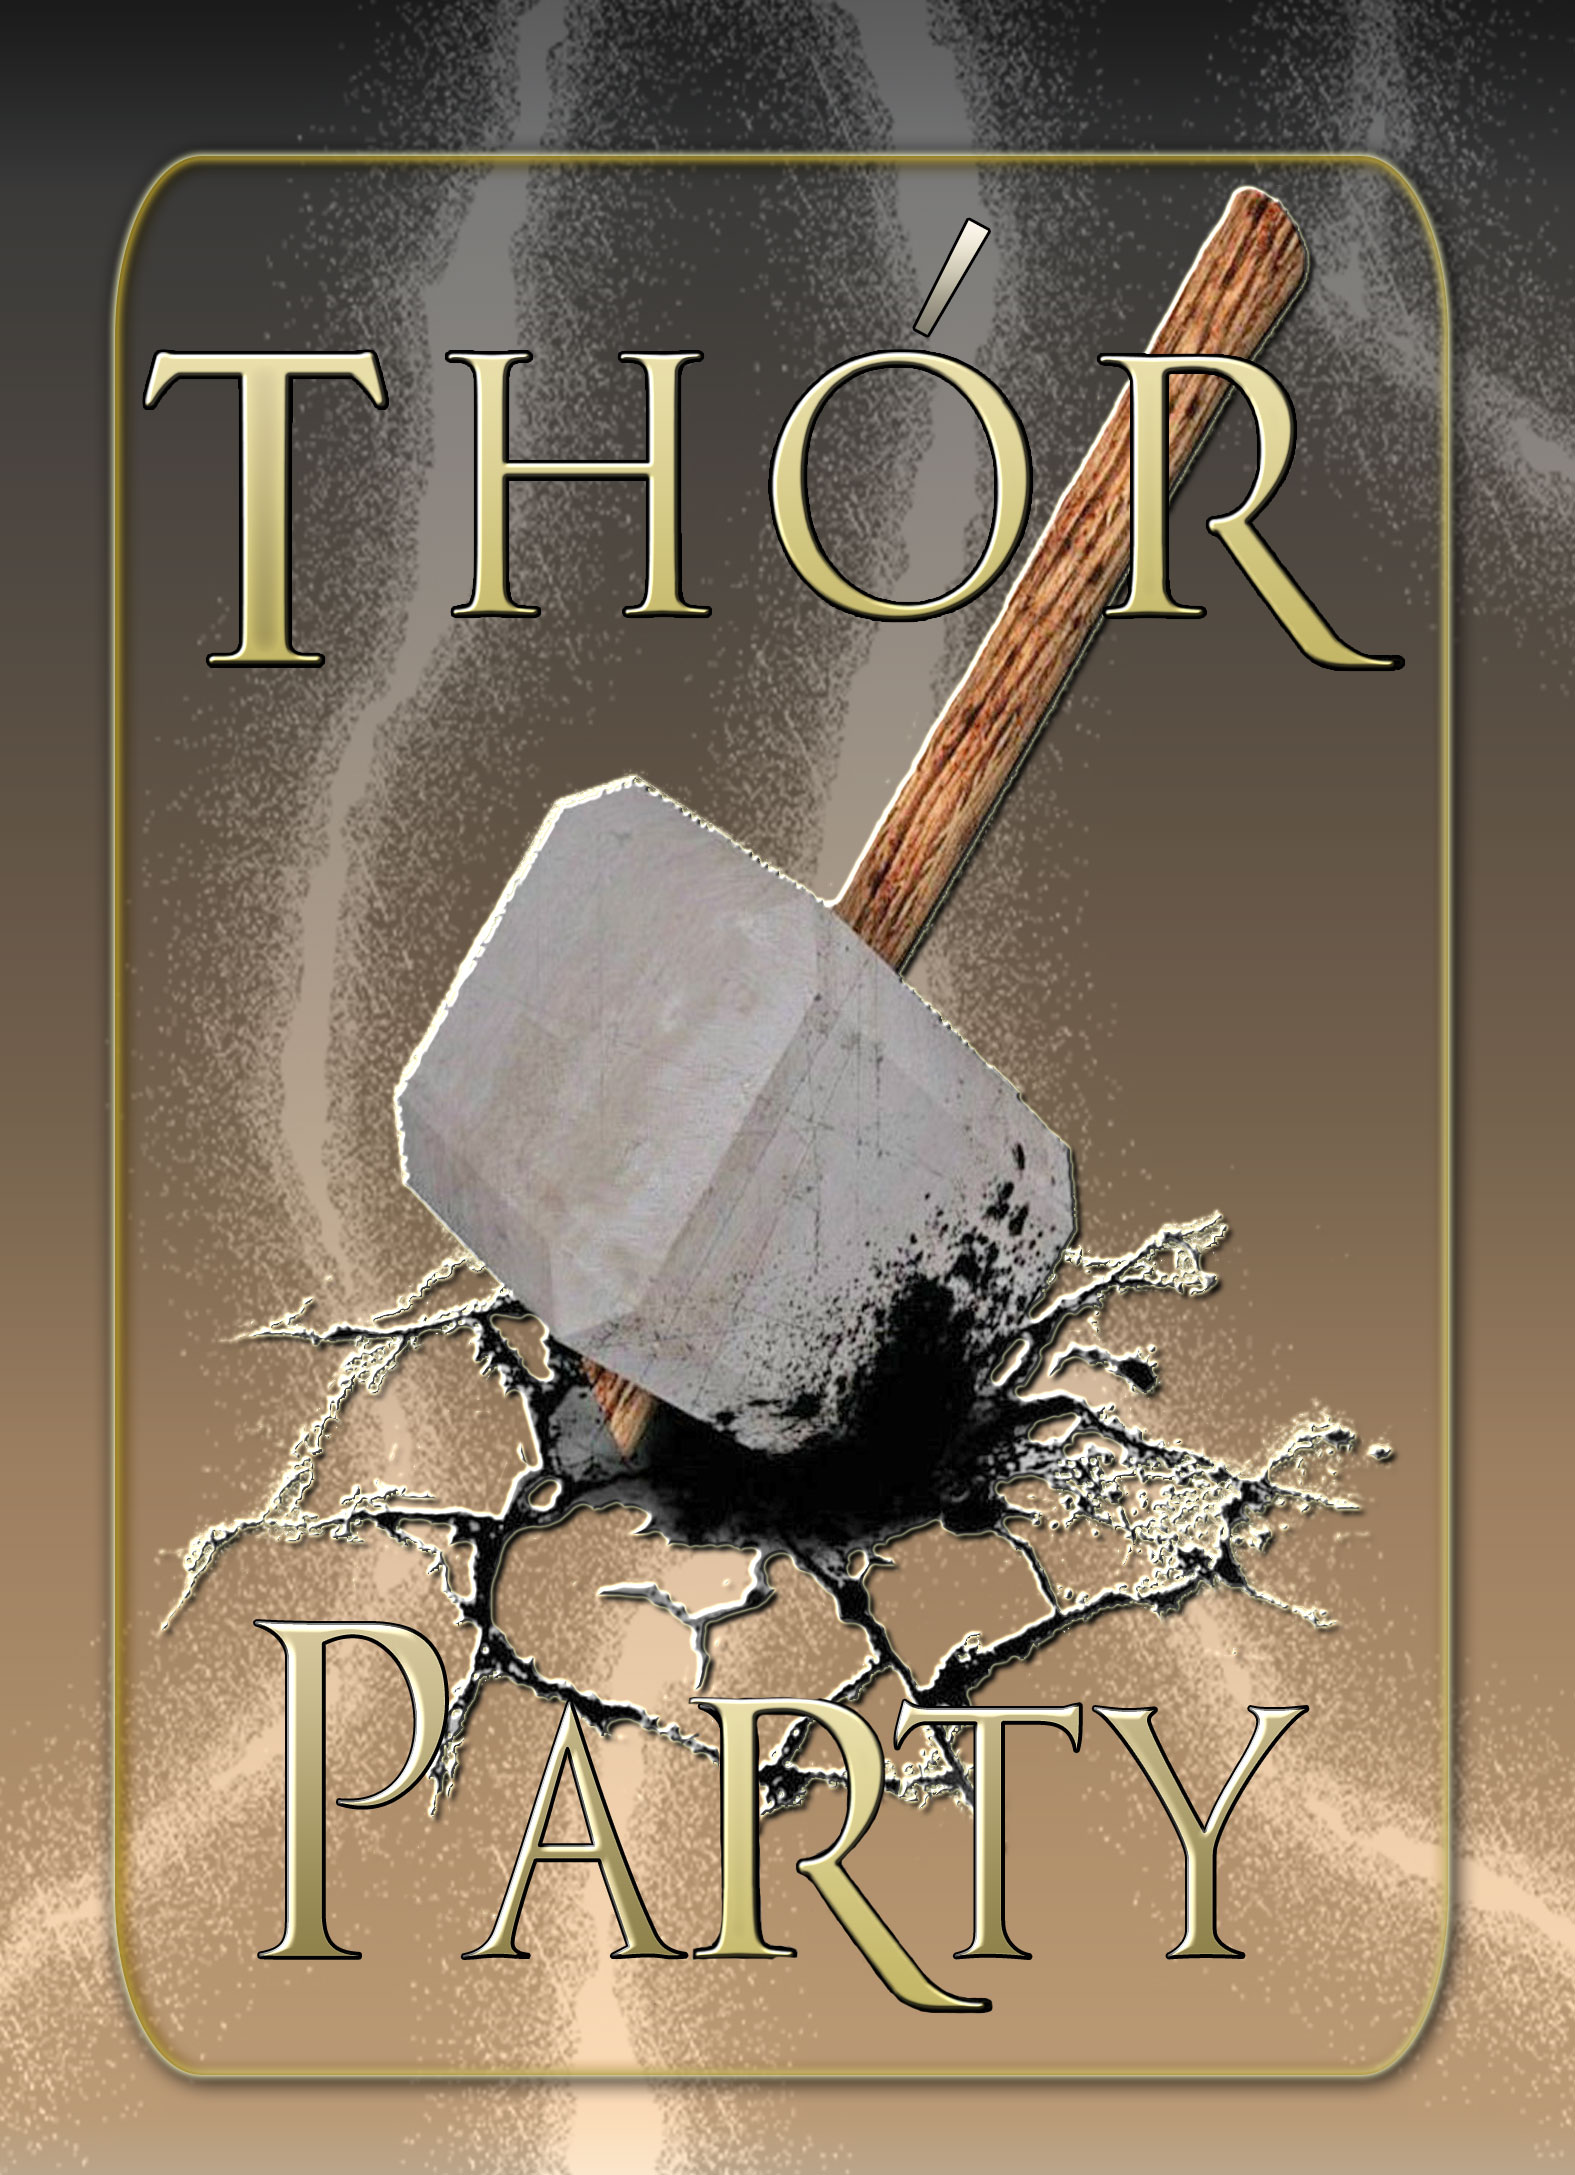 Thors hammer personalized birthday invitation 2 sided birthday card thors hammer personalized birthday invitation 2 sided birthday card party invitation thor party filmwisefo